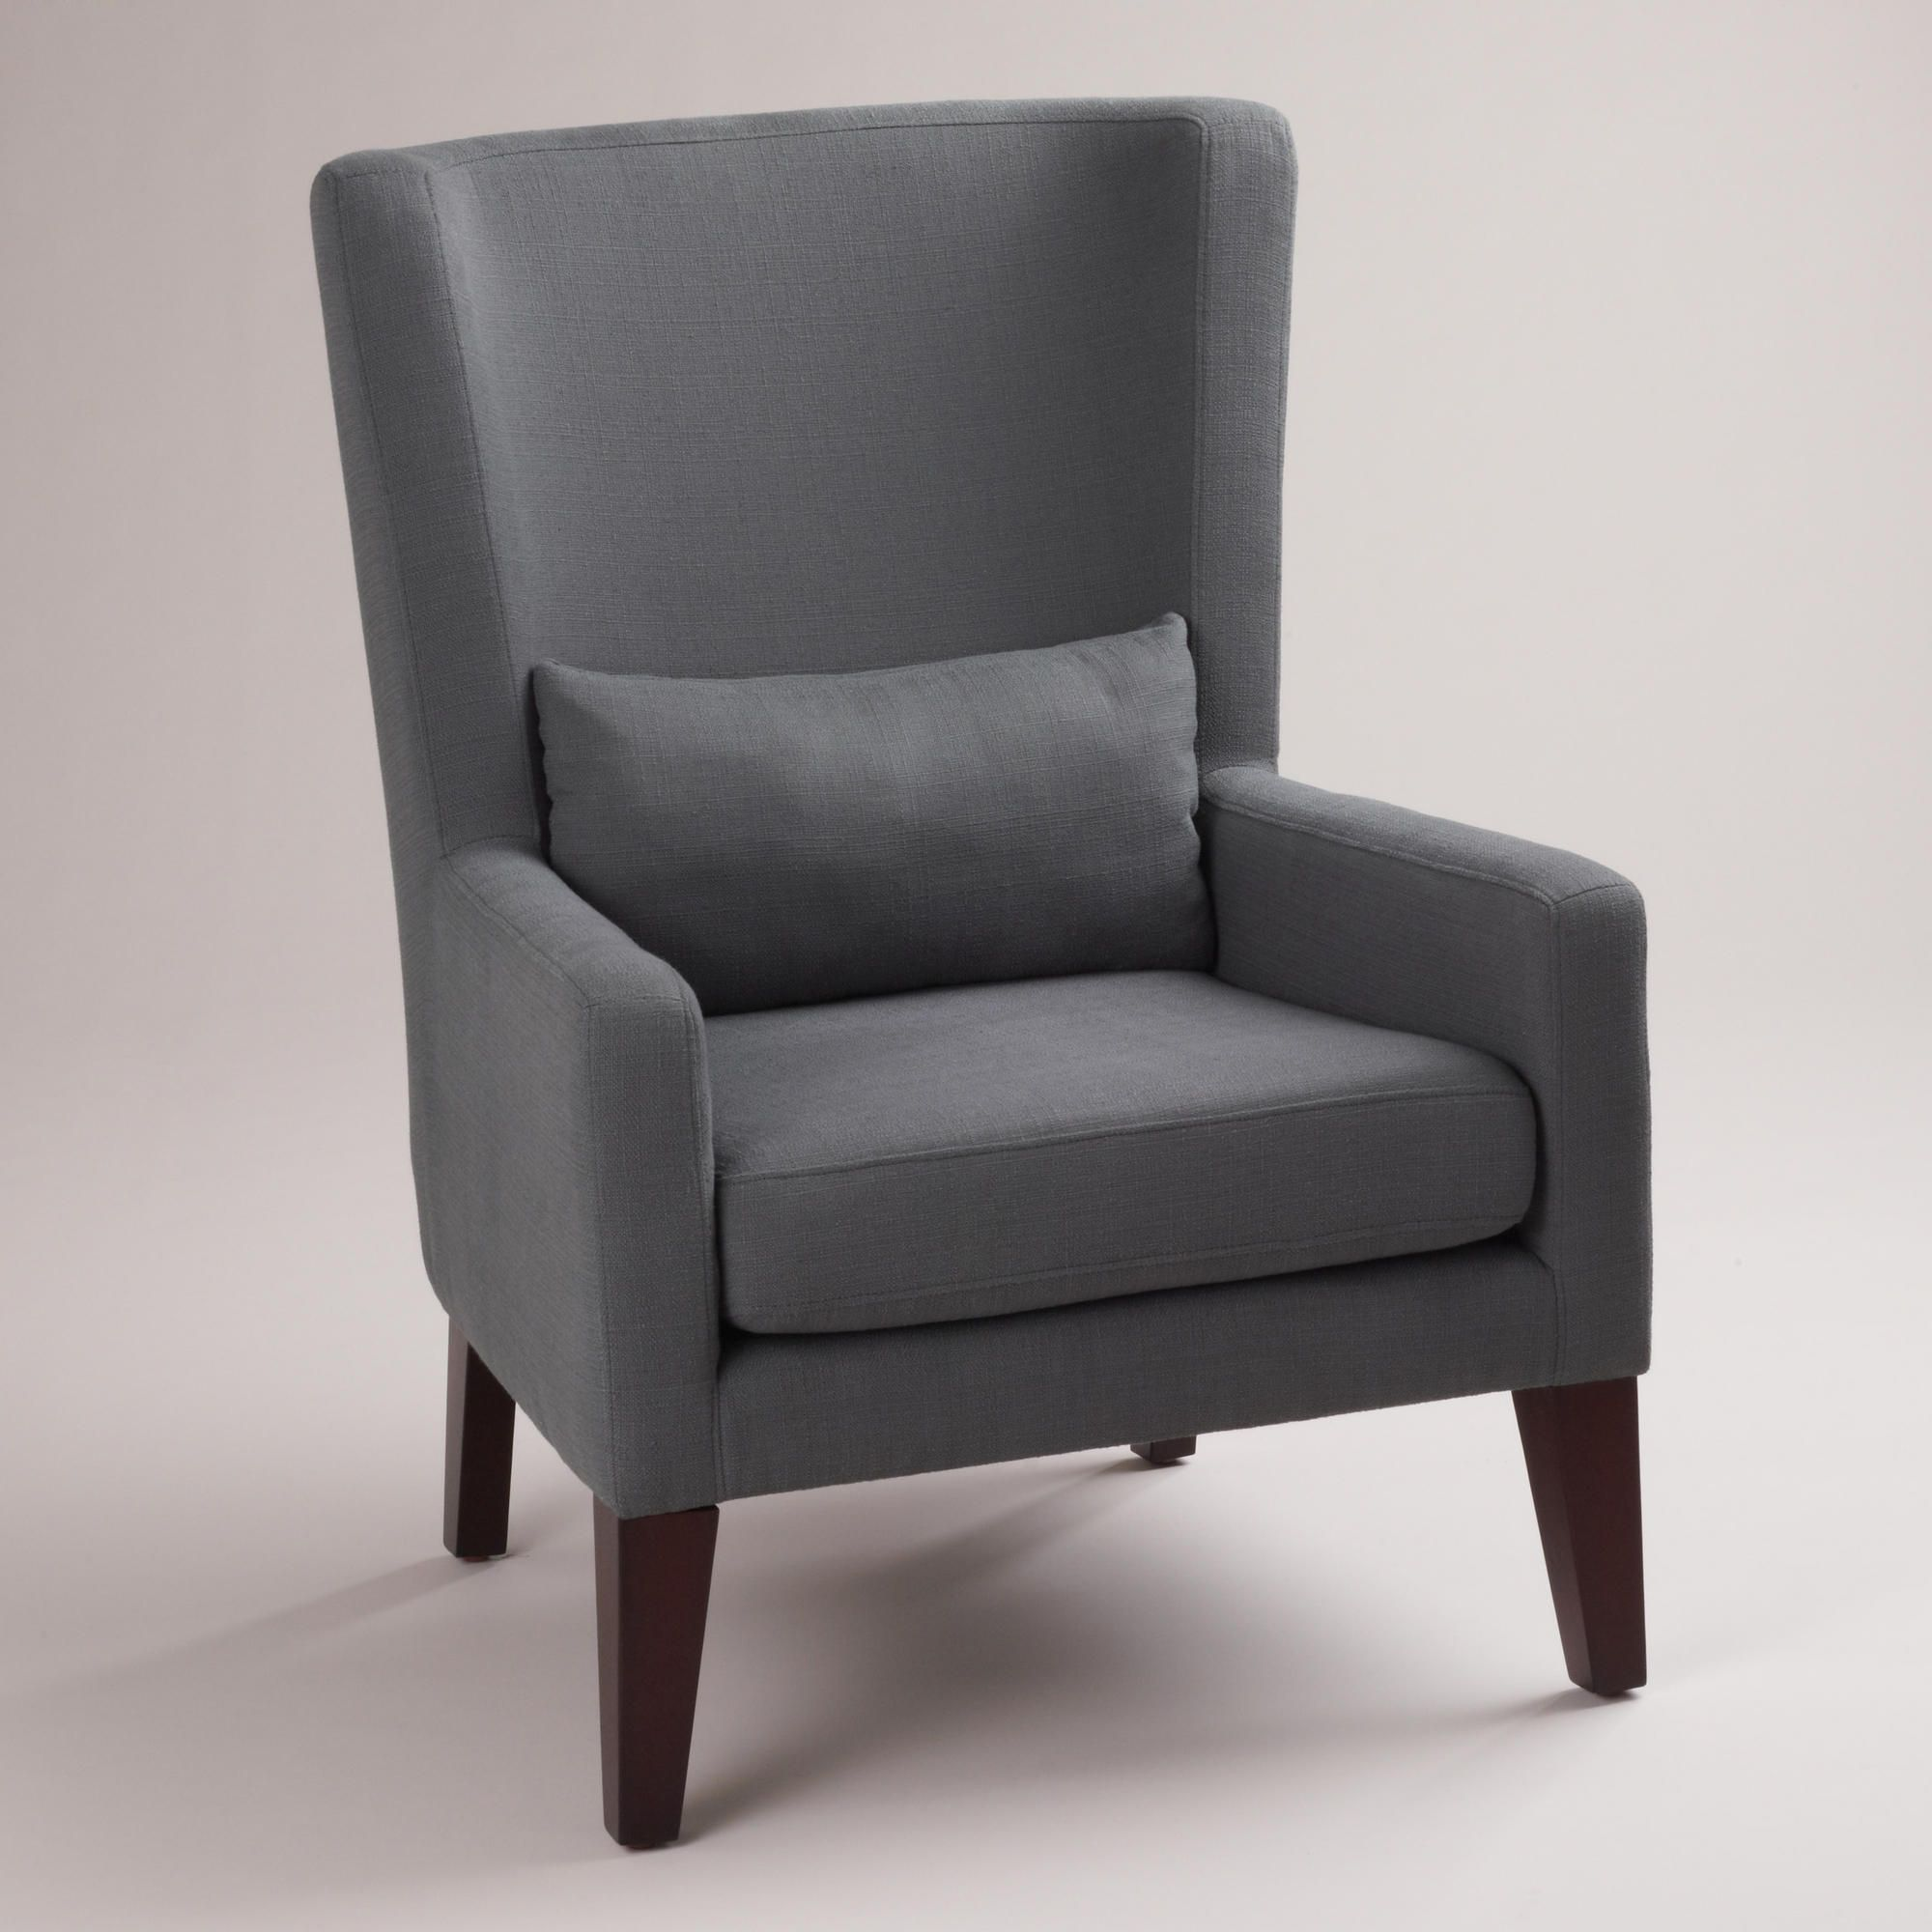 Good Guest Bedroom Dove Gray Triton High Back Chair